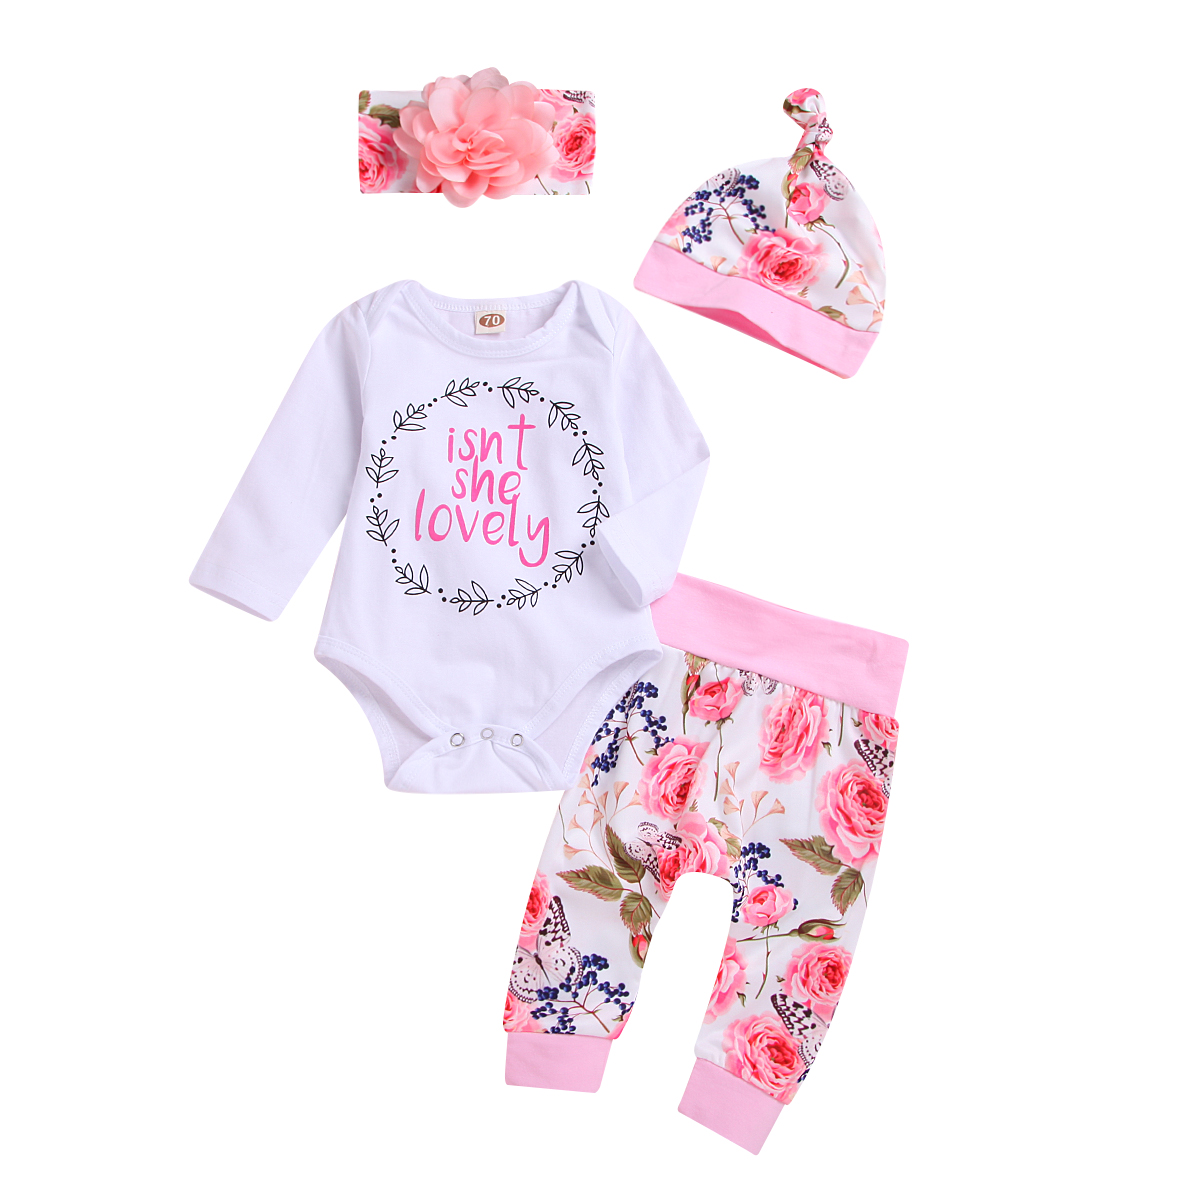 Cute Newborn Baby Girl Outfits Sets Fashion Long Sleeve Letter Bodysuit Tops Floral Pants Hat Headband Girls Casual Clothes Set cut out front trumpet sleeve floral mesh bodysuit